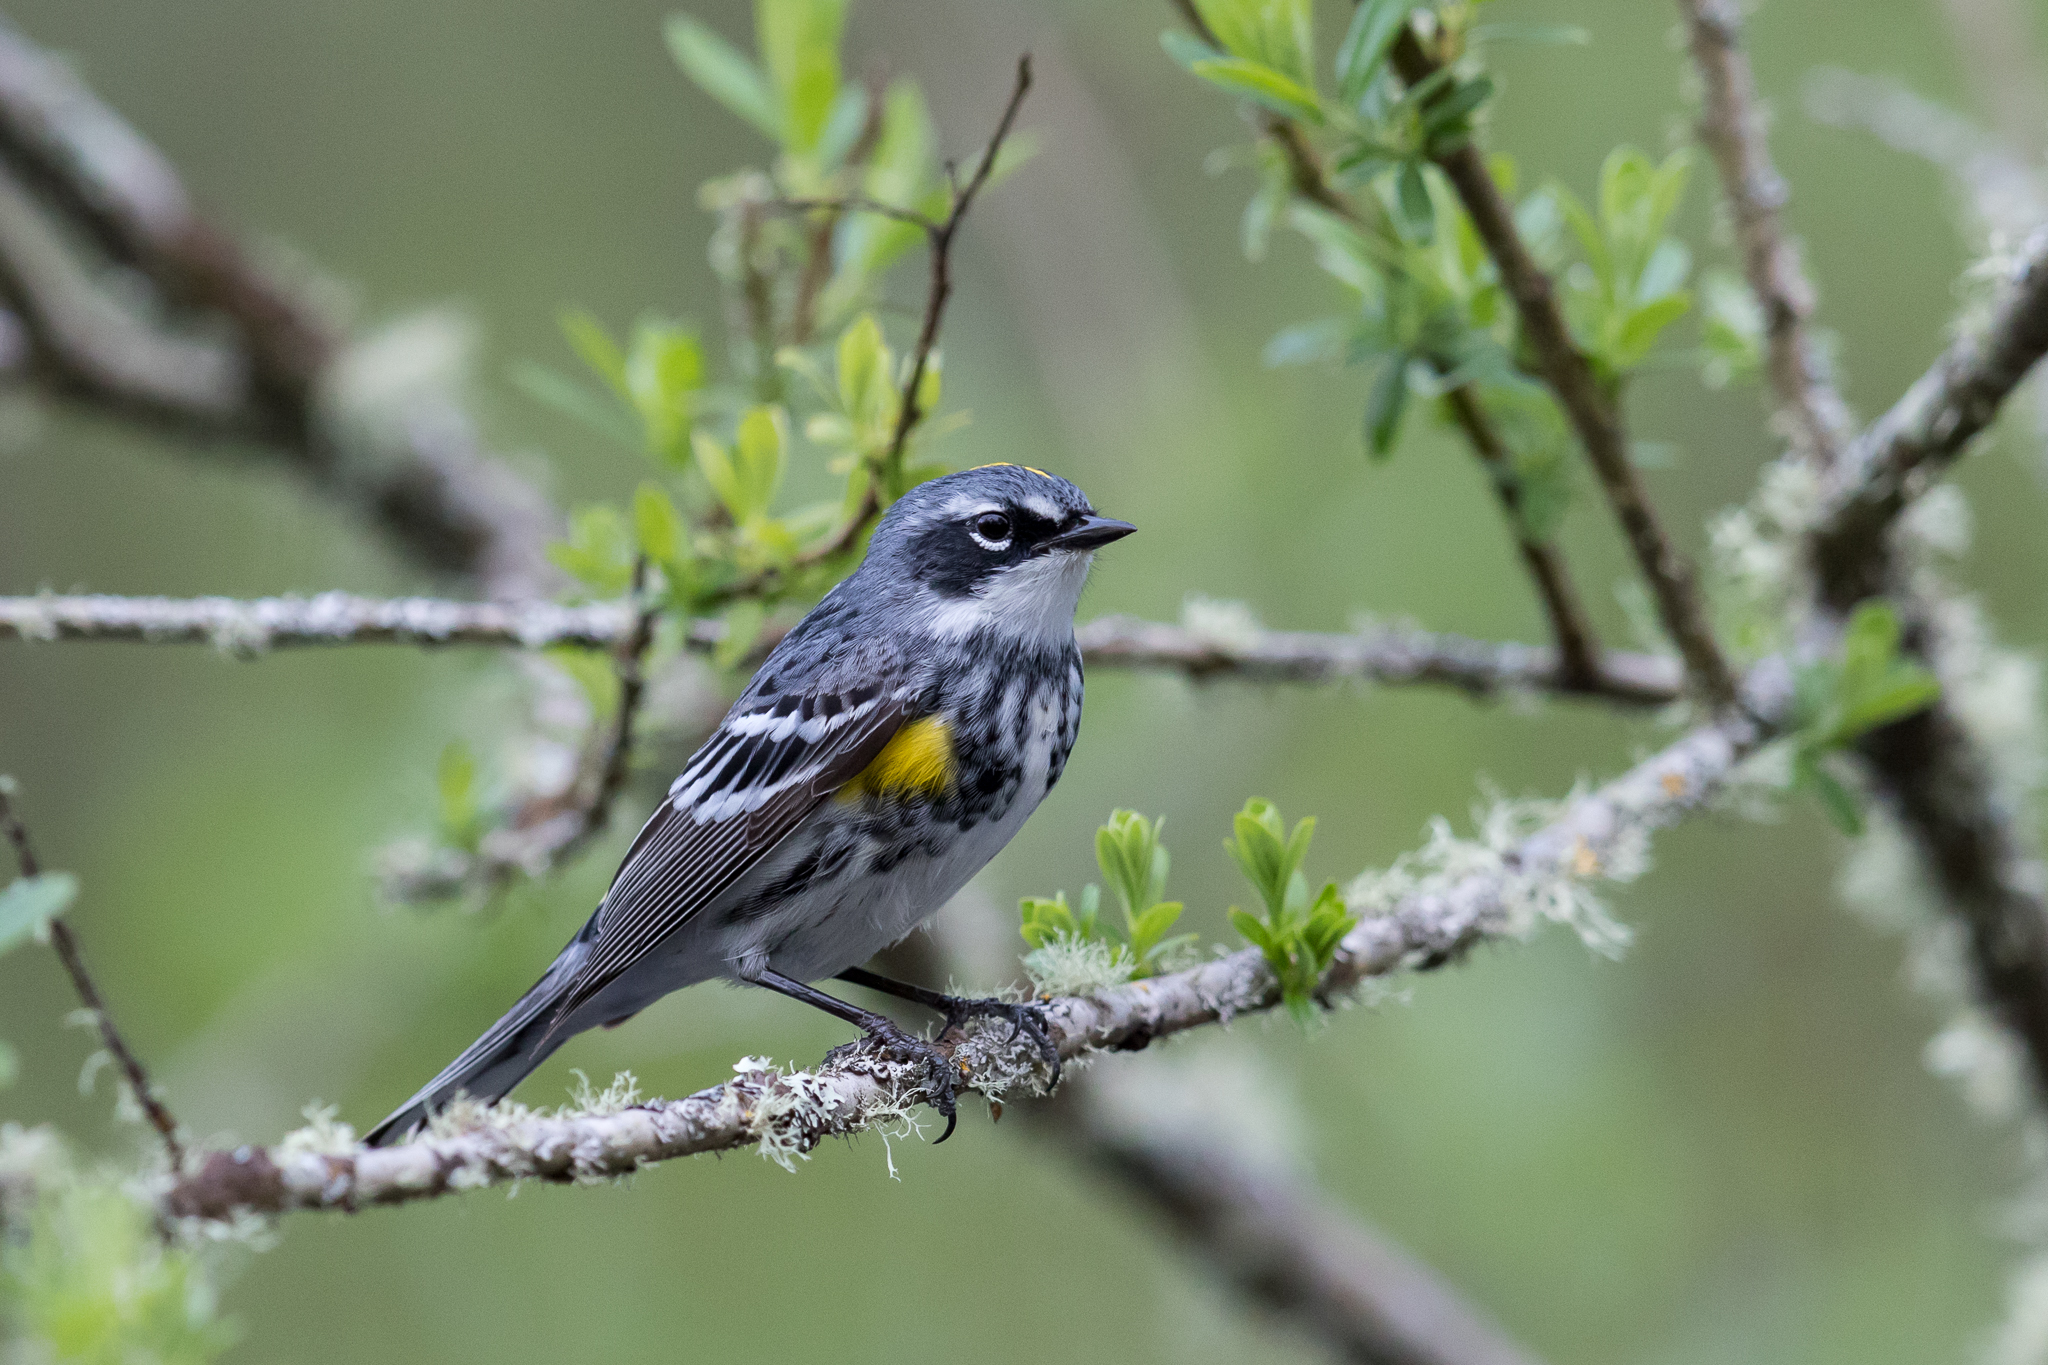 Photo: Yellow-rumped Warbler, by Tyler Hartje